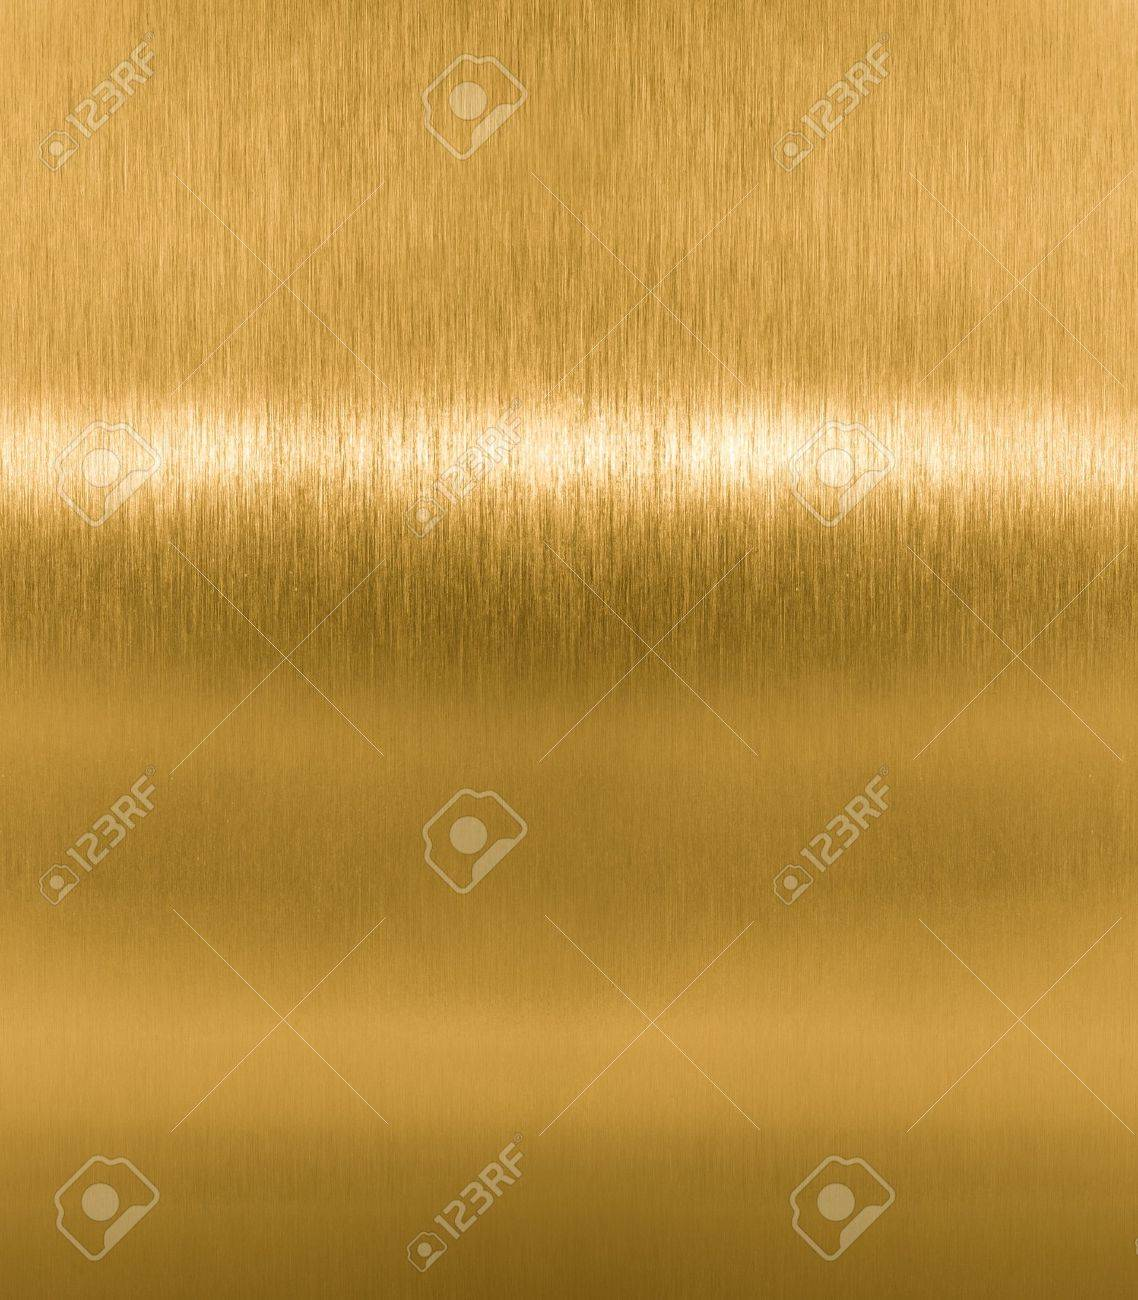 Brass Gold Texture Brass or Golden Metal Texture